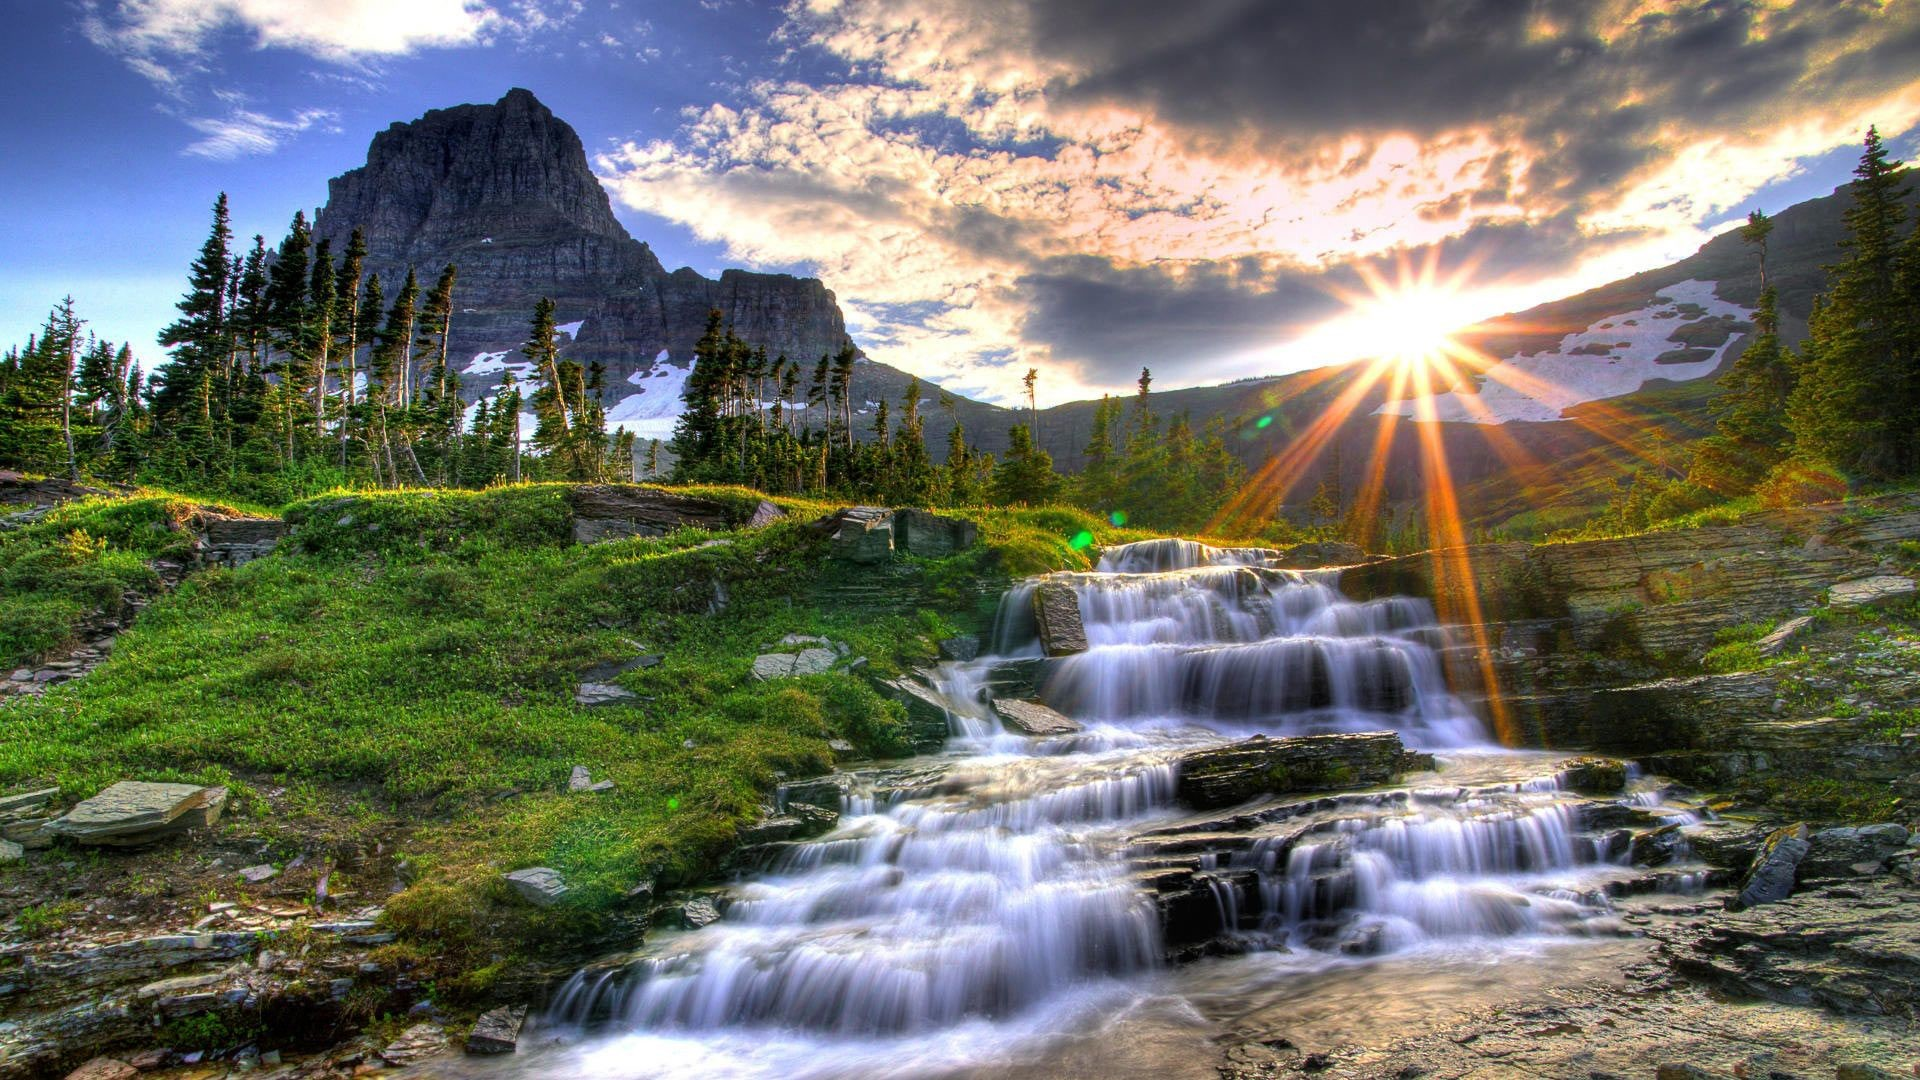 Awesome nature backgrounds 63 images - Background pictures of nature for desktop ...